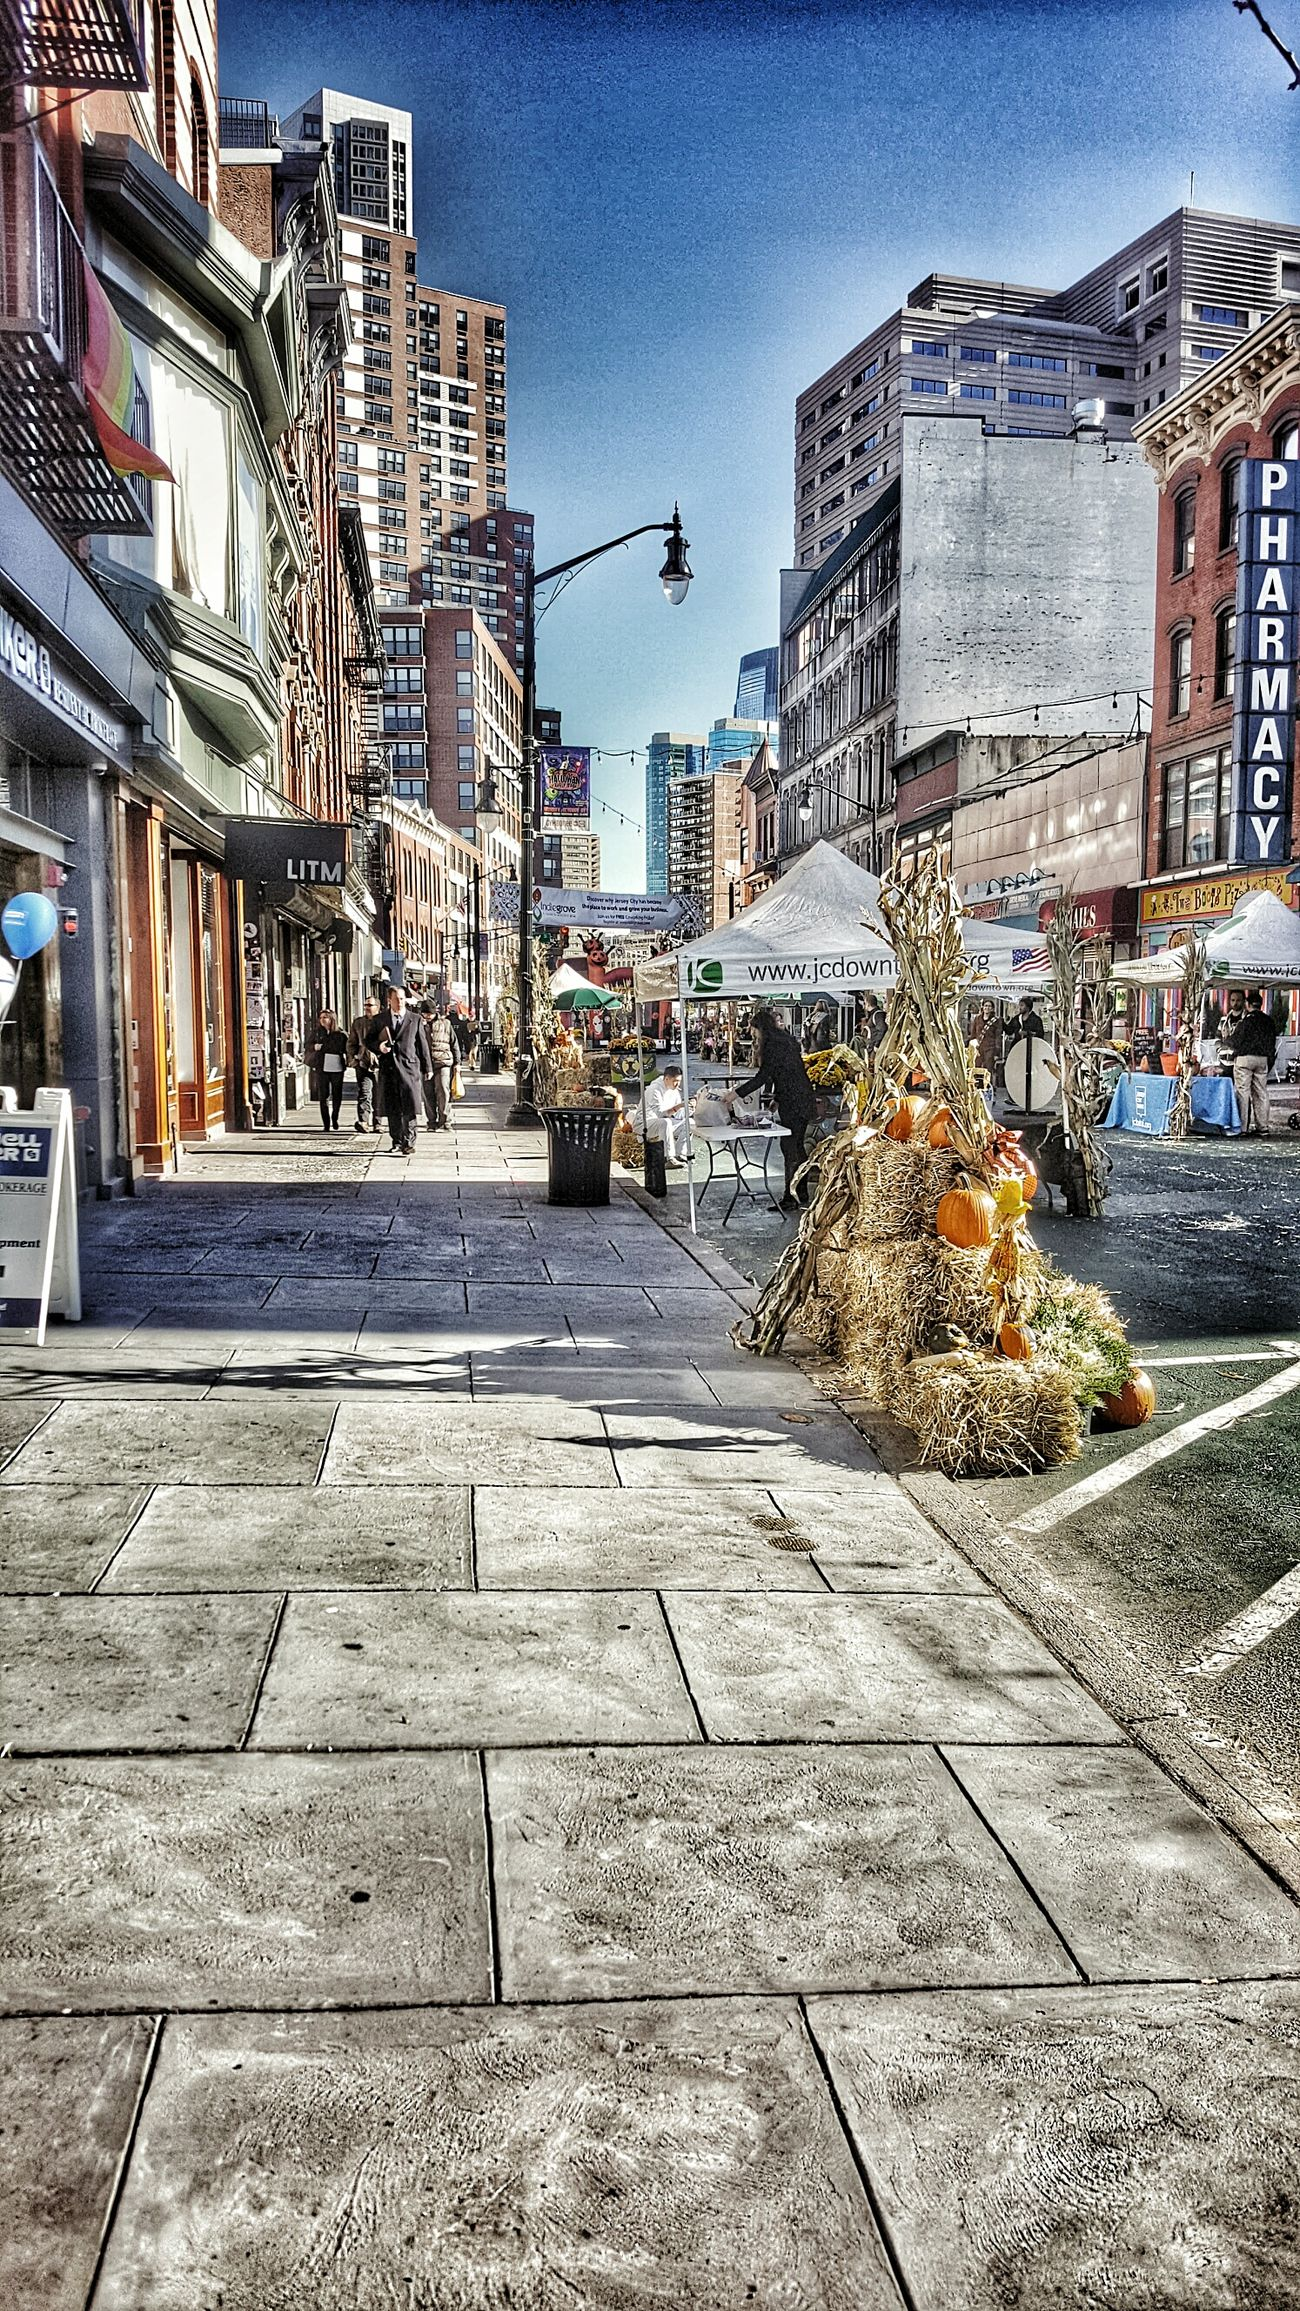 Revisiting familiar streets My Year My View Jersey City Architecture Building Exterior City Built Structure Sky Outdoors No People Day Hdr_Collection